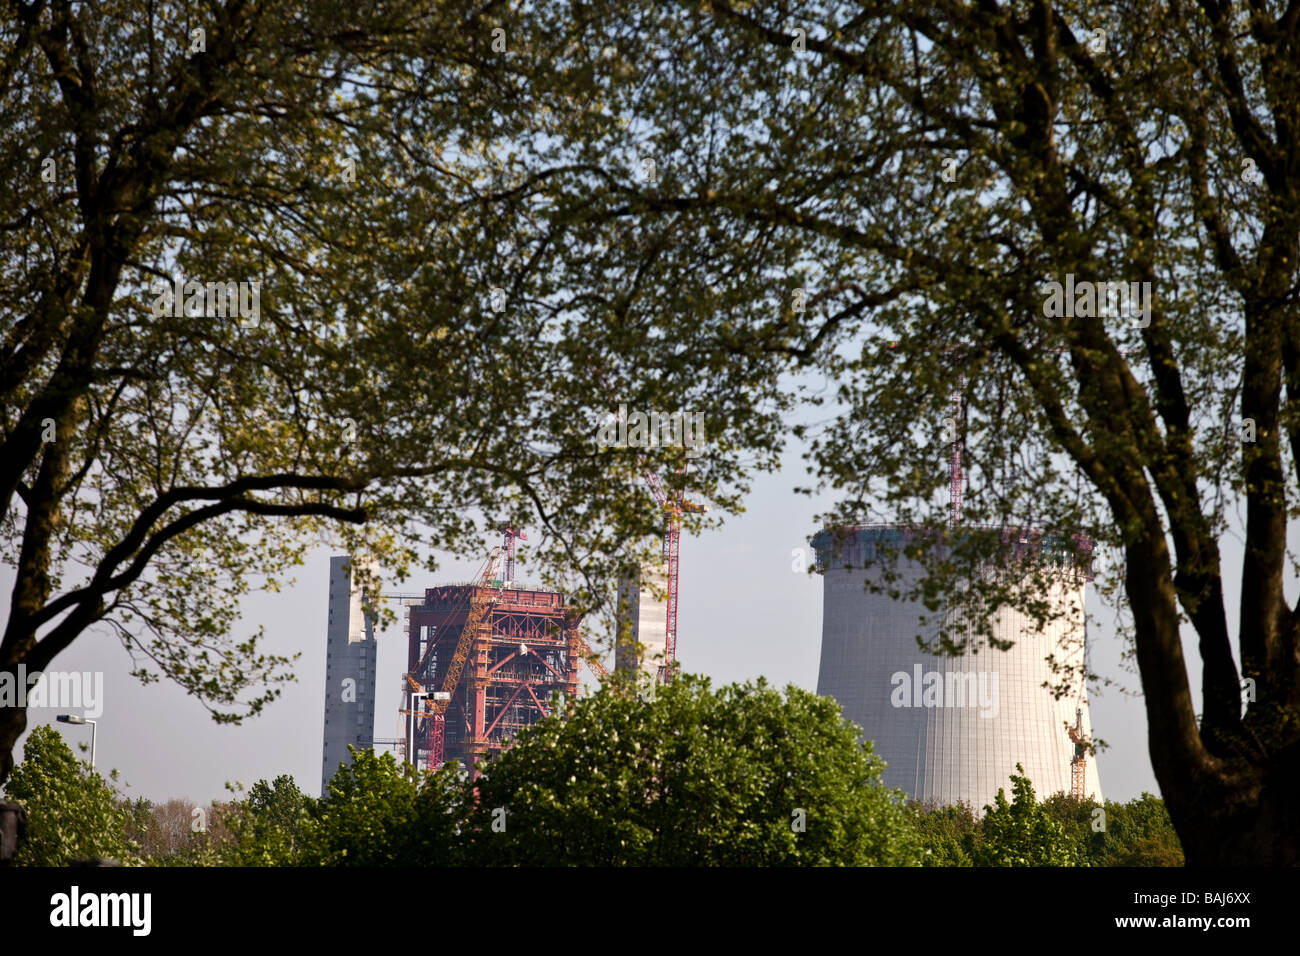 Landscape with nature and heavy industry, power station in NRW, North Rhine - Westphalia, Dortmund, Germany. - Stock Image